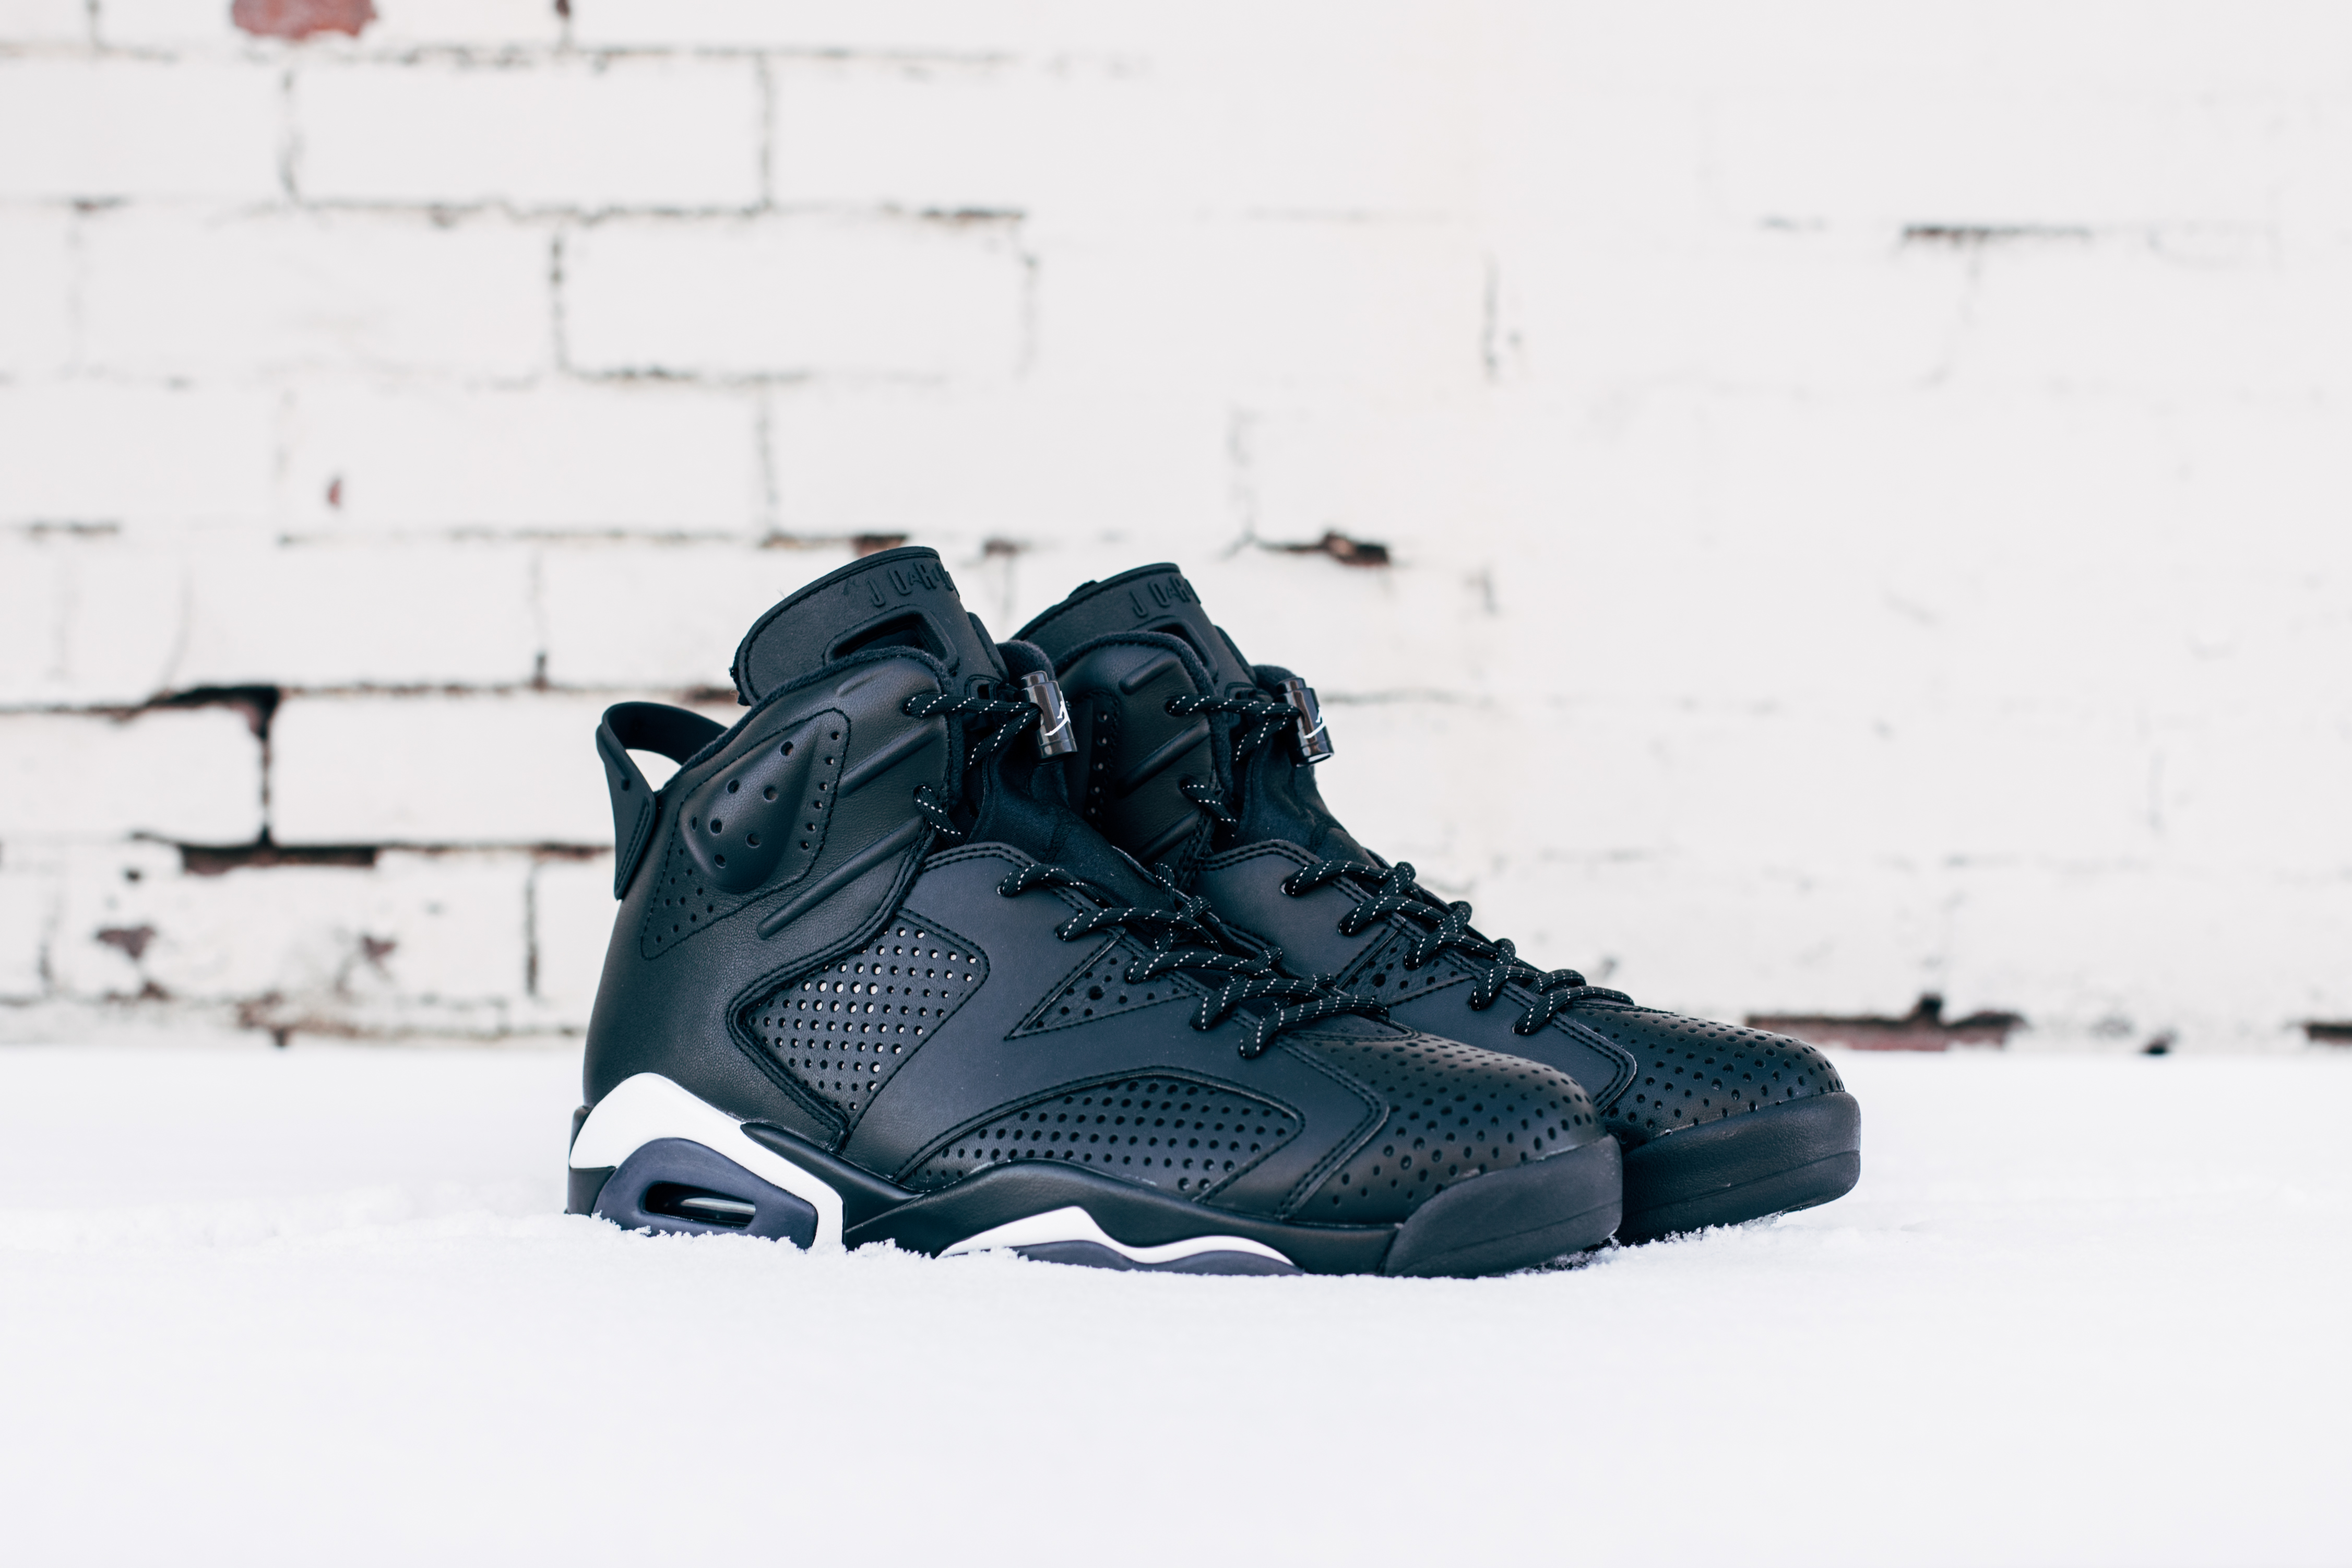 Air Jordan 6 Retro Black Cat Angle 384664 020